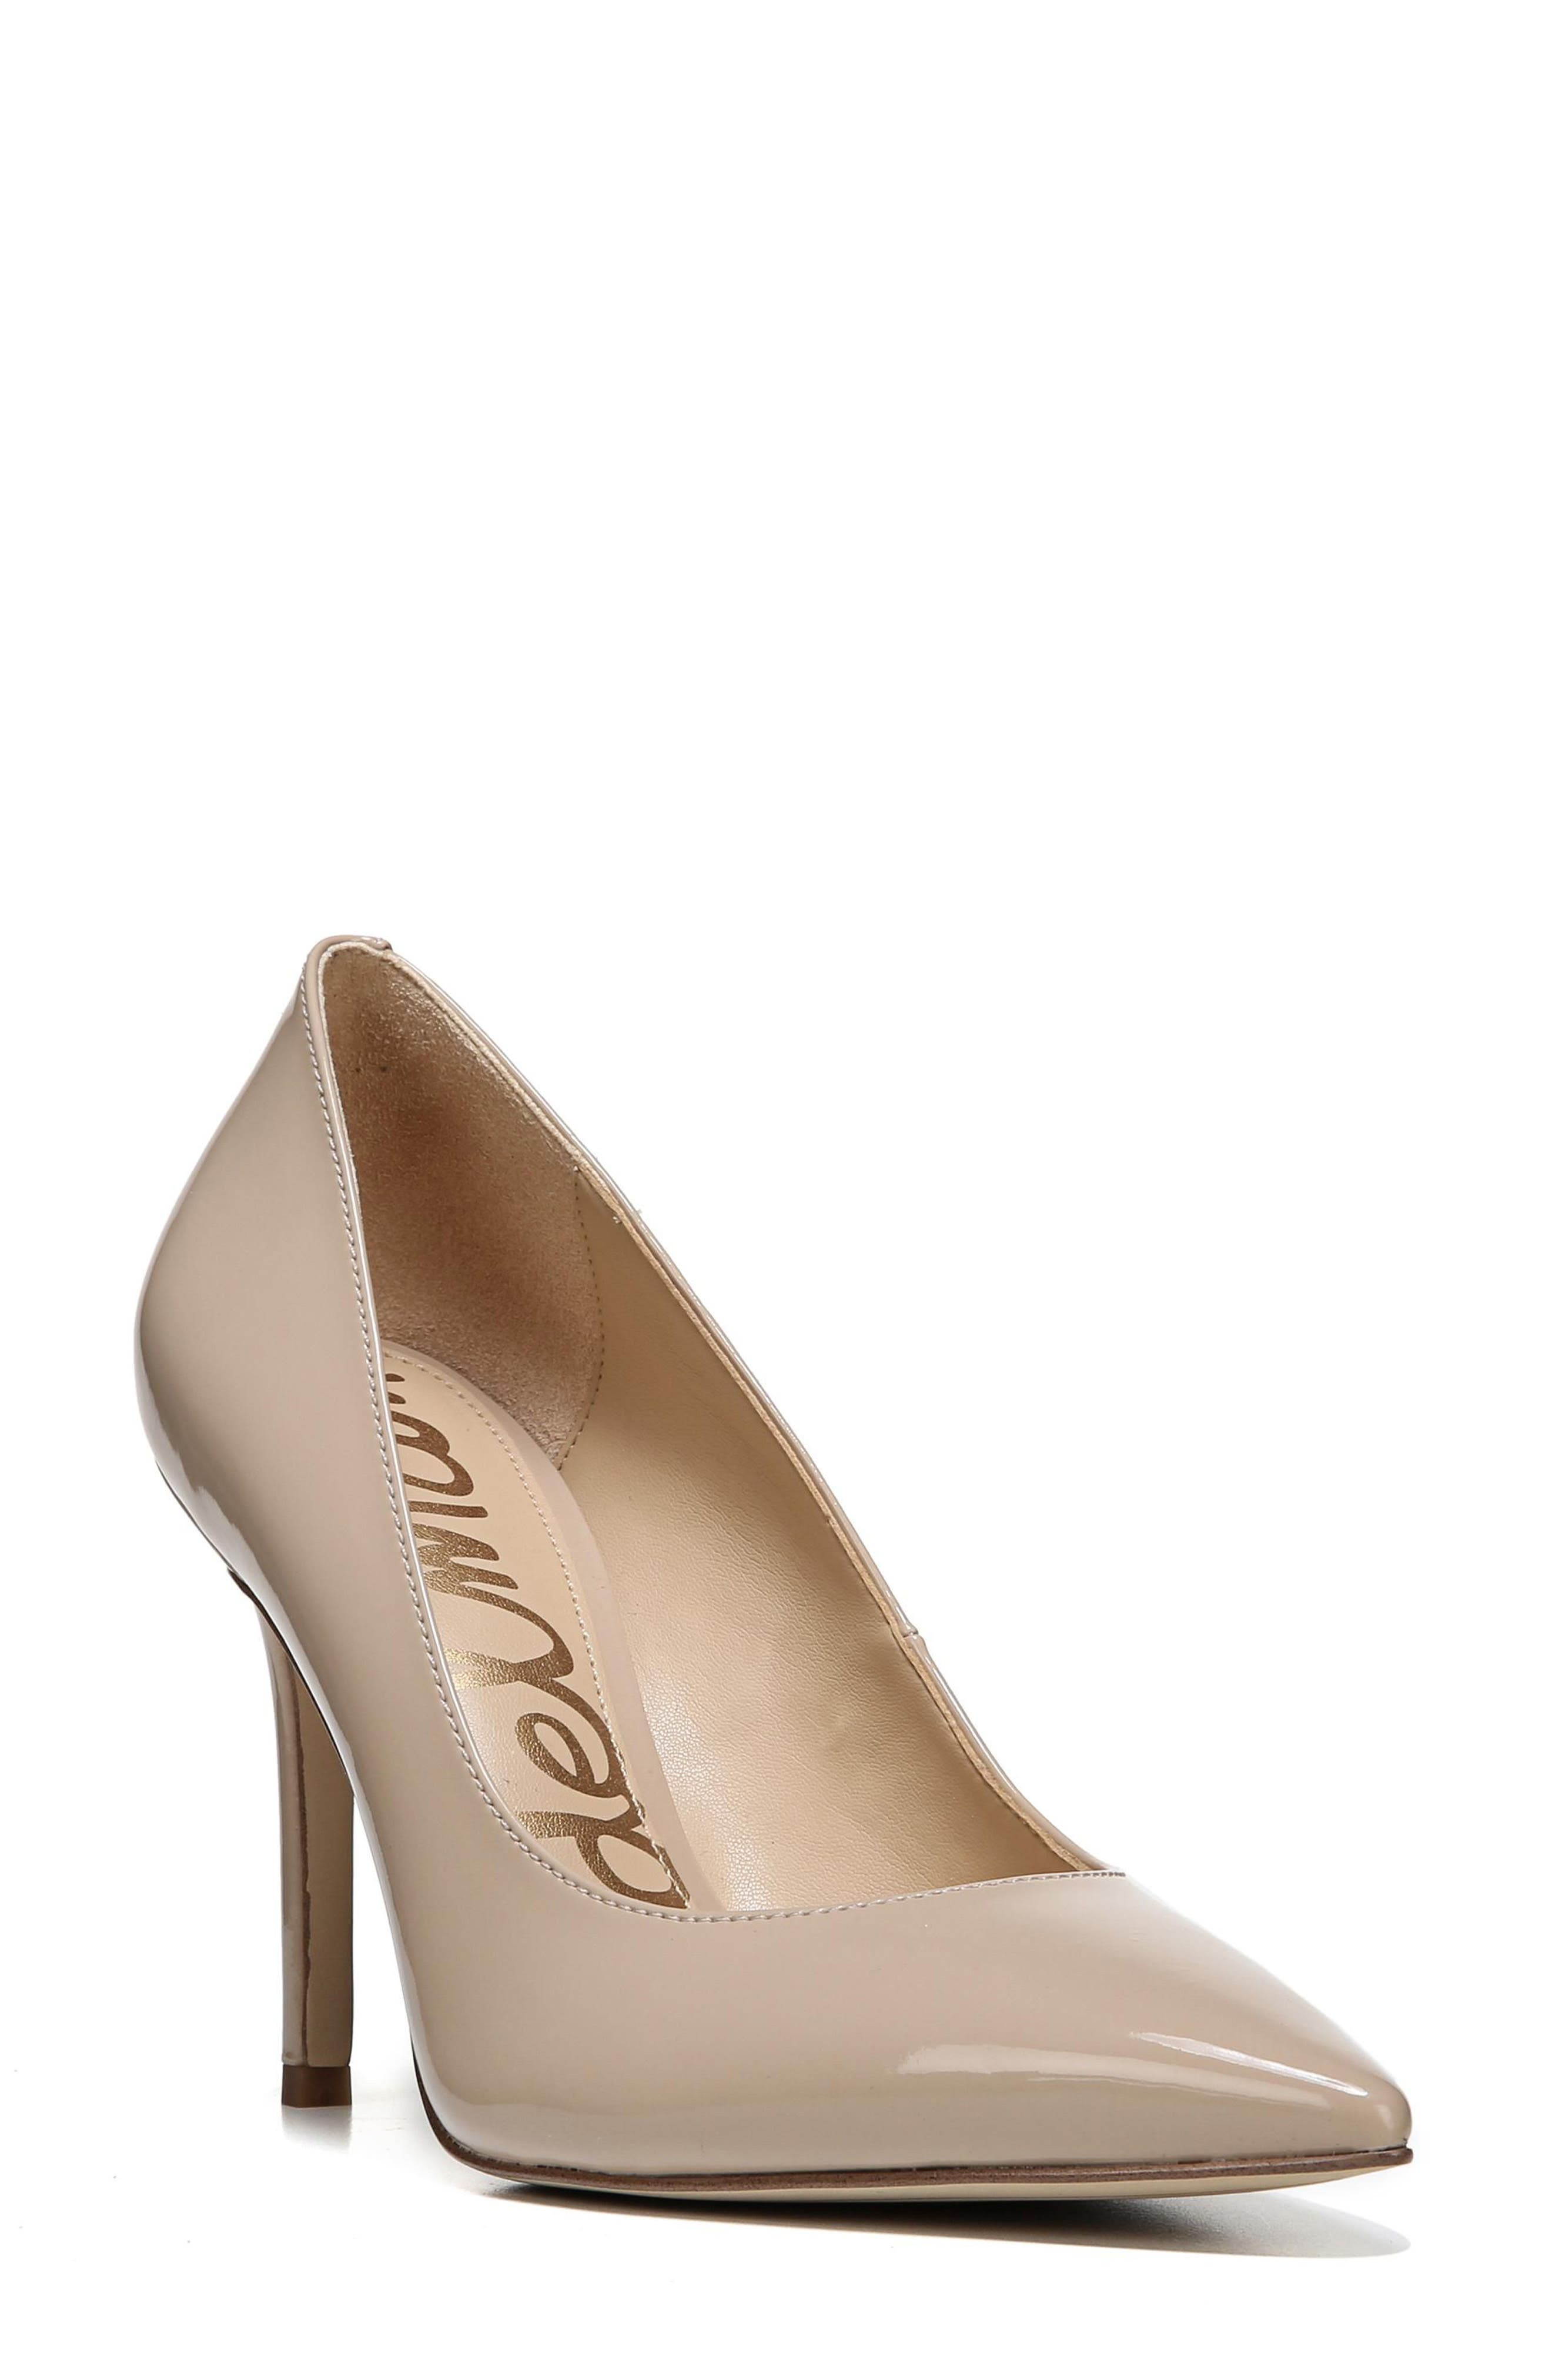 SAM EDELMAN Hazel Pointy Toe Pump, Main, color, NUDE LINEN PATENT LEATHER